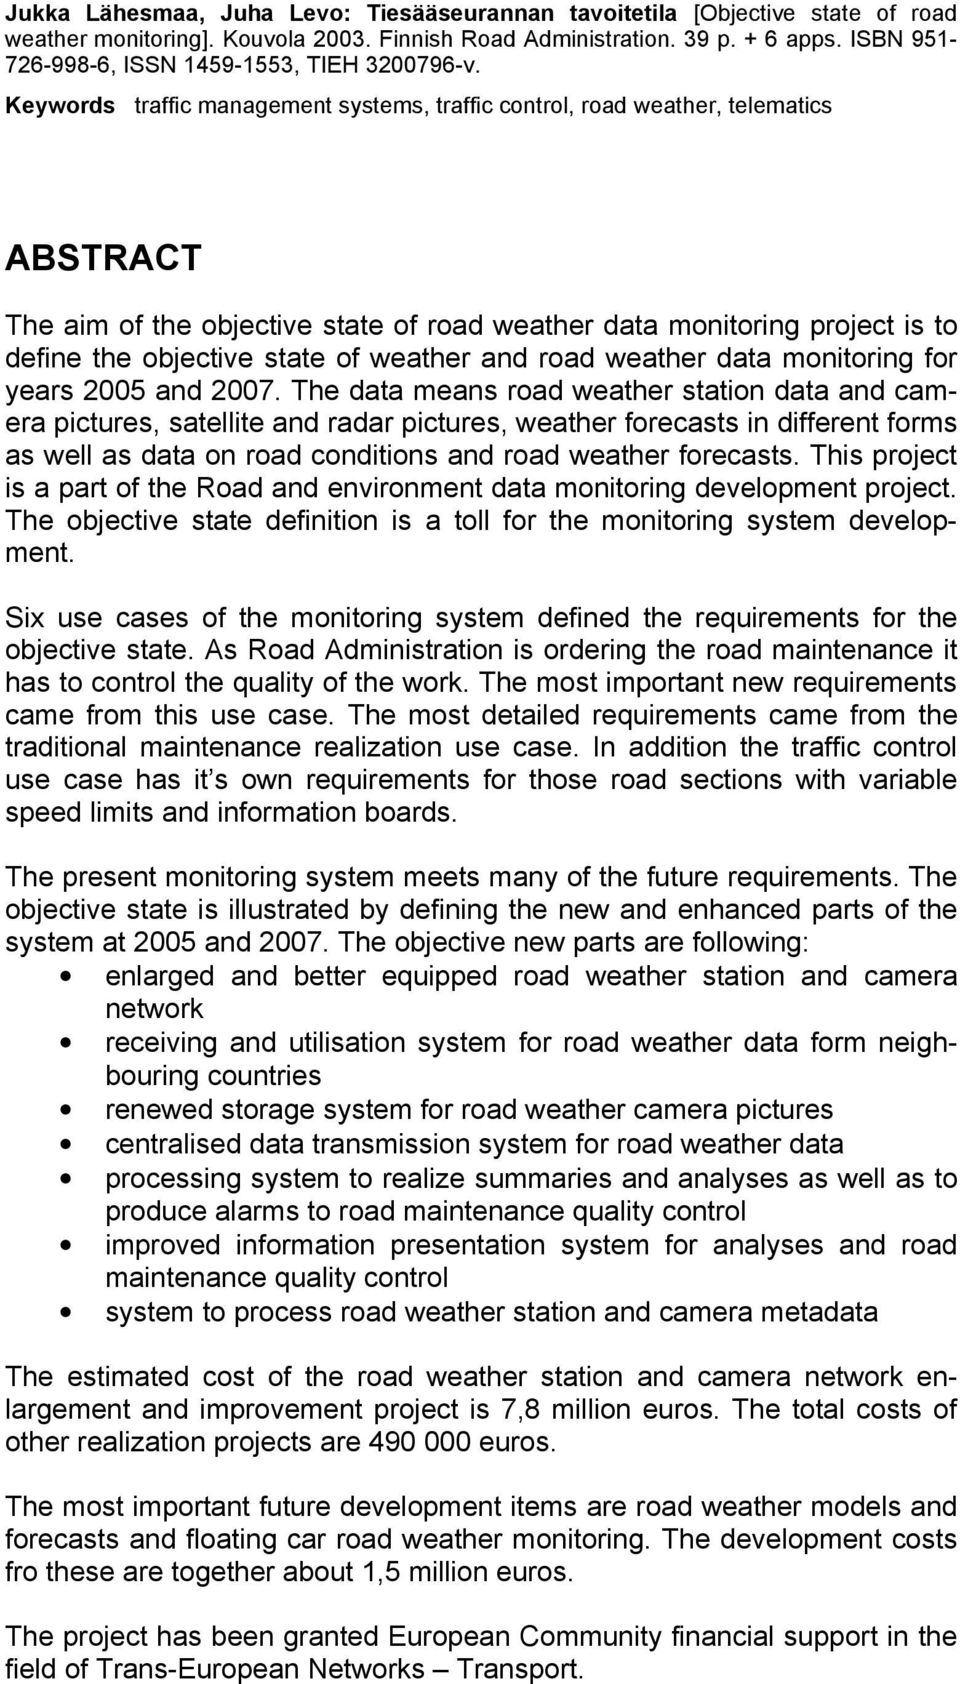 Keywords traffic management systems, traffic control, road weather, telematics ABSTRACT The aim of the objective state of road weather data monitoring project is to define the objective state of